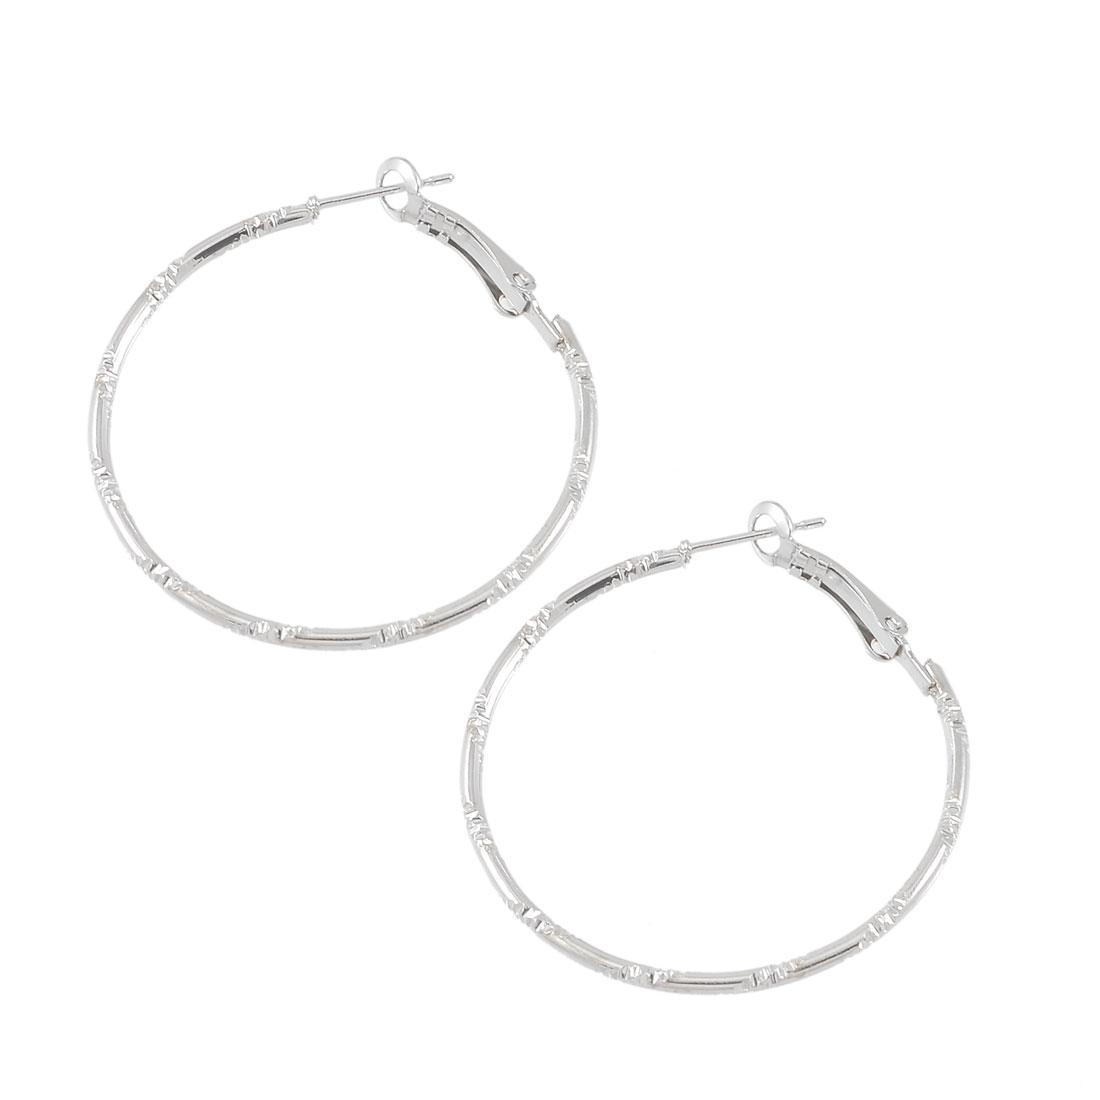 Lady Party Ornament Textured Metal Spring Hoop Earrings Silver Tone Pair